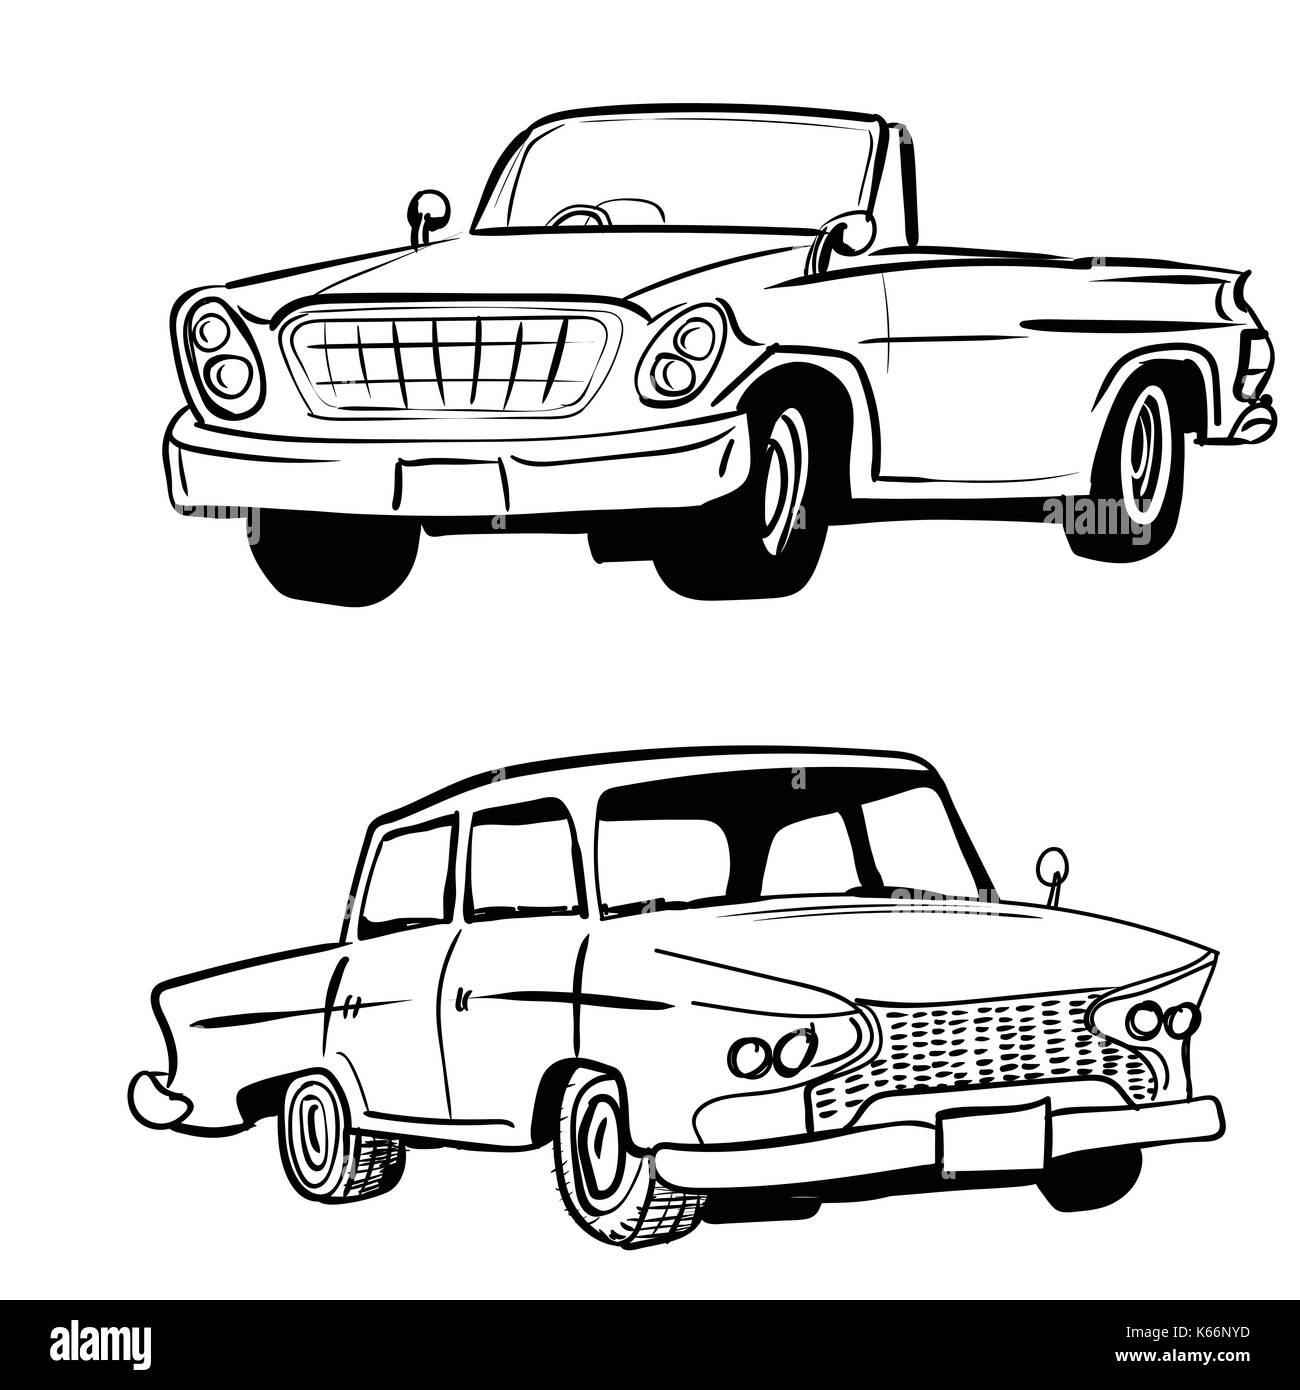 Hand drawn sketch of classic car, vintage car, transport or vehicle design. Vector Illustration - Stock Image